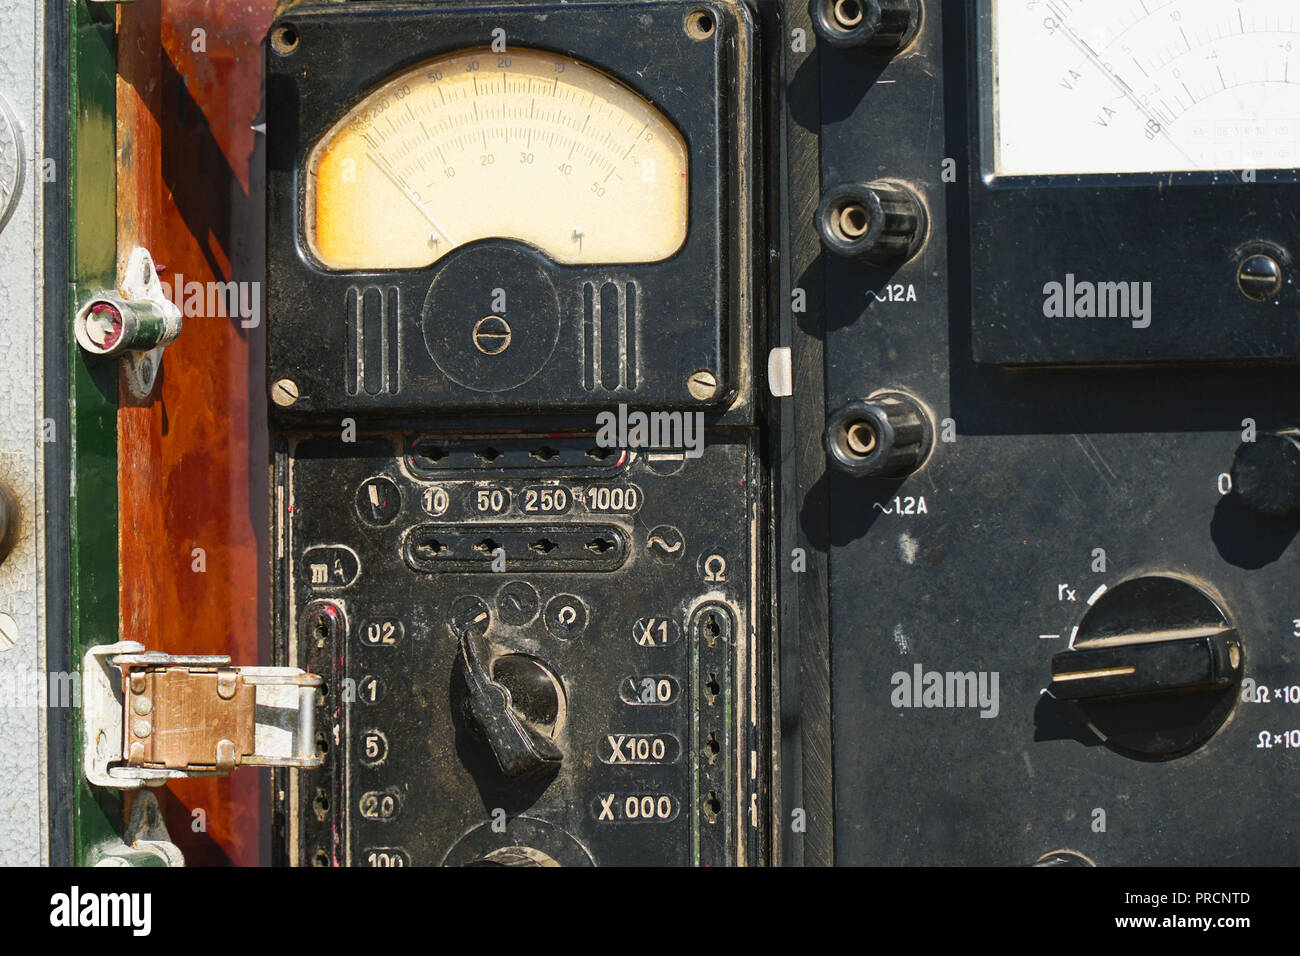 Old analogue multimeter with dial scale - Stock Image